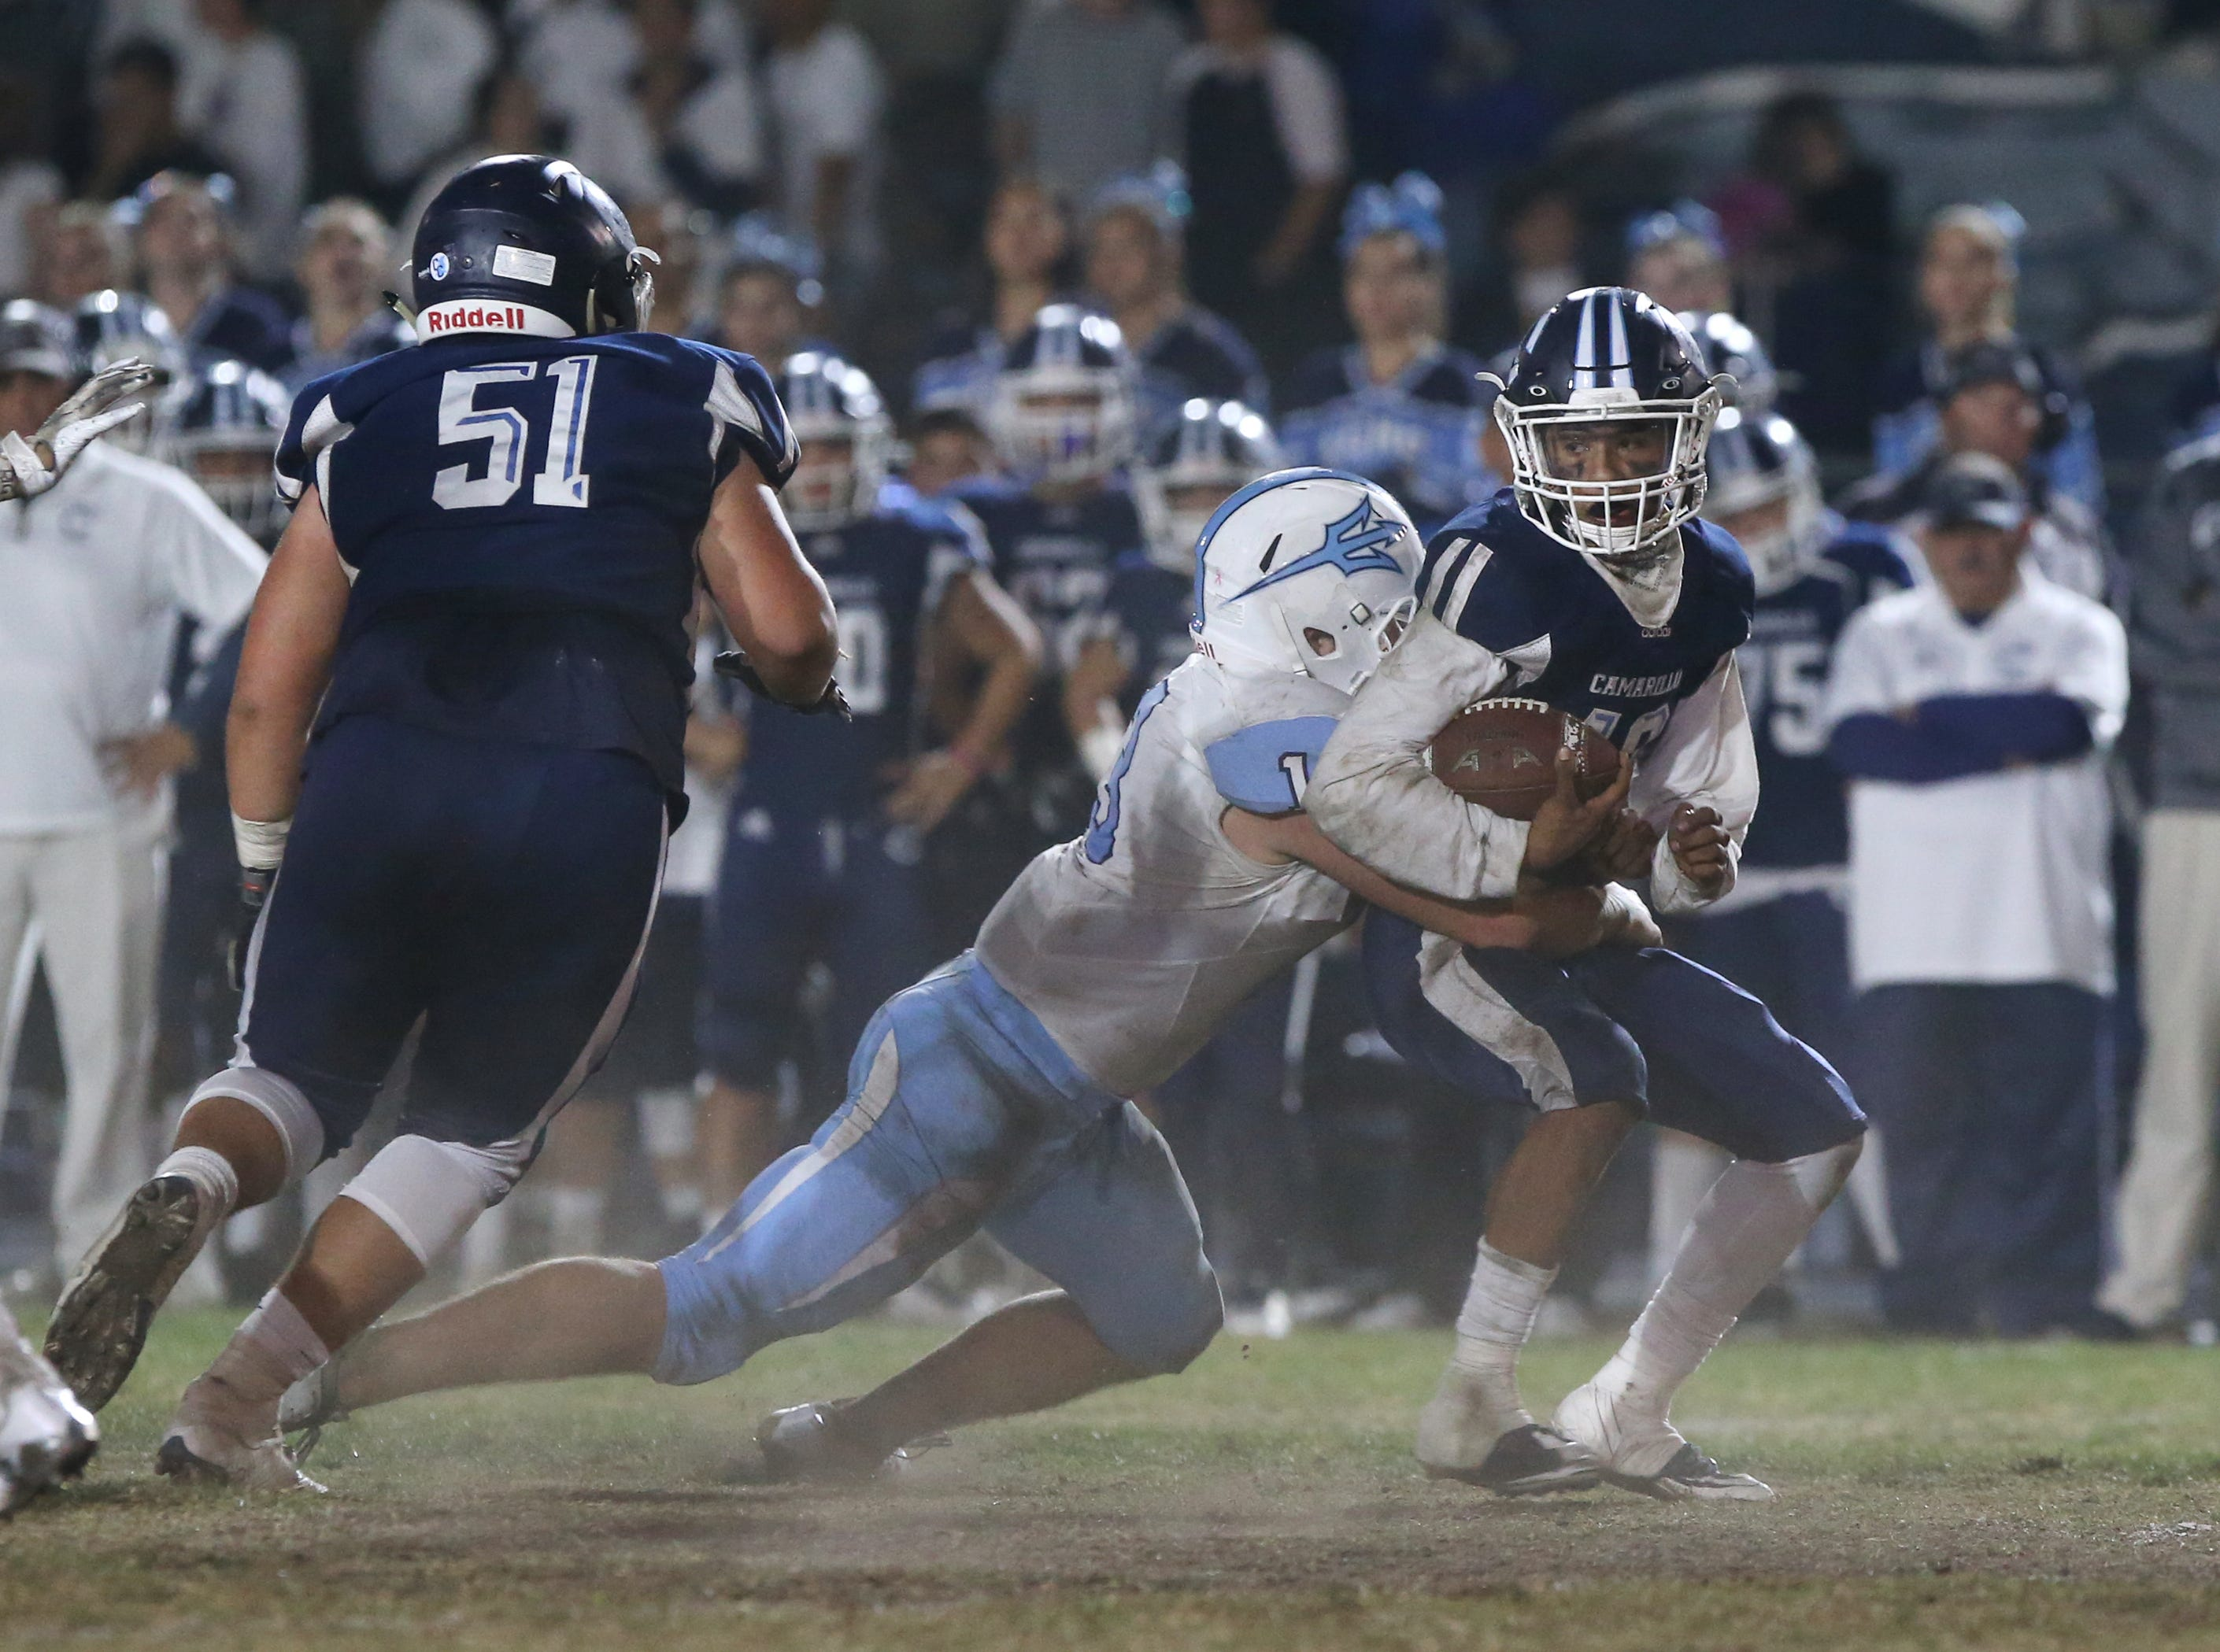 Camarillo High running back Jesse Valenzuela is stopped by Corona del Mar's Chase Zanck during their CIF-SS Division 4 semifinal game on Friday night.